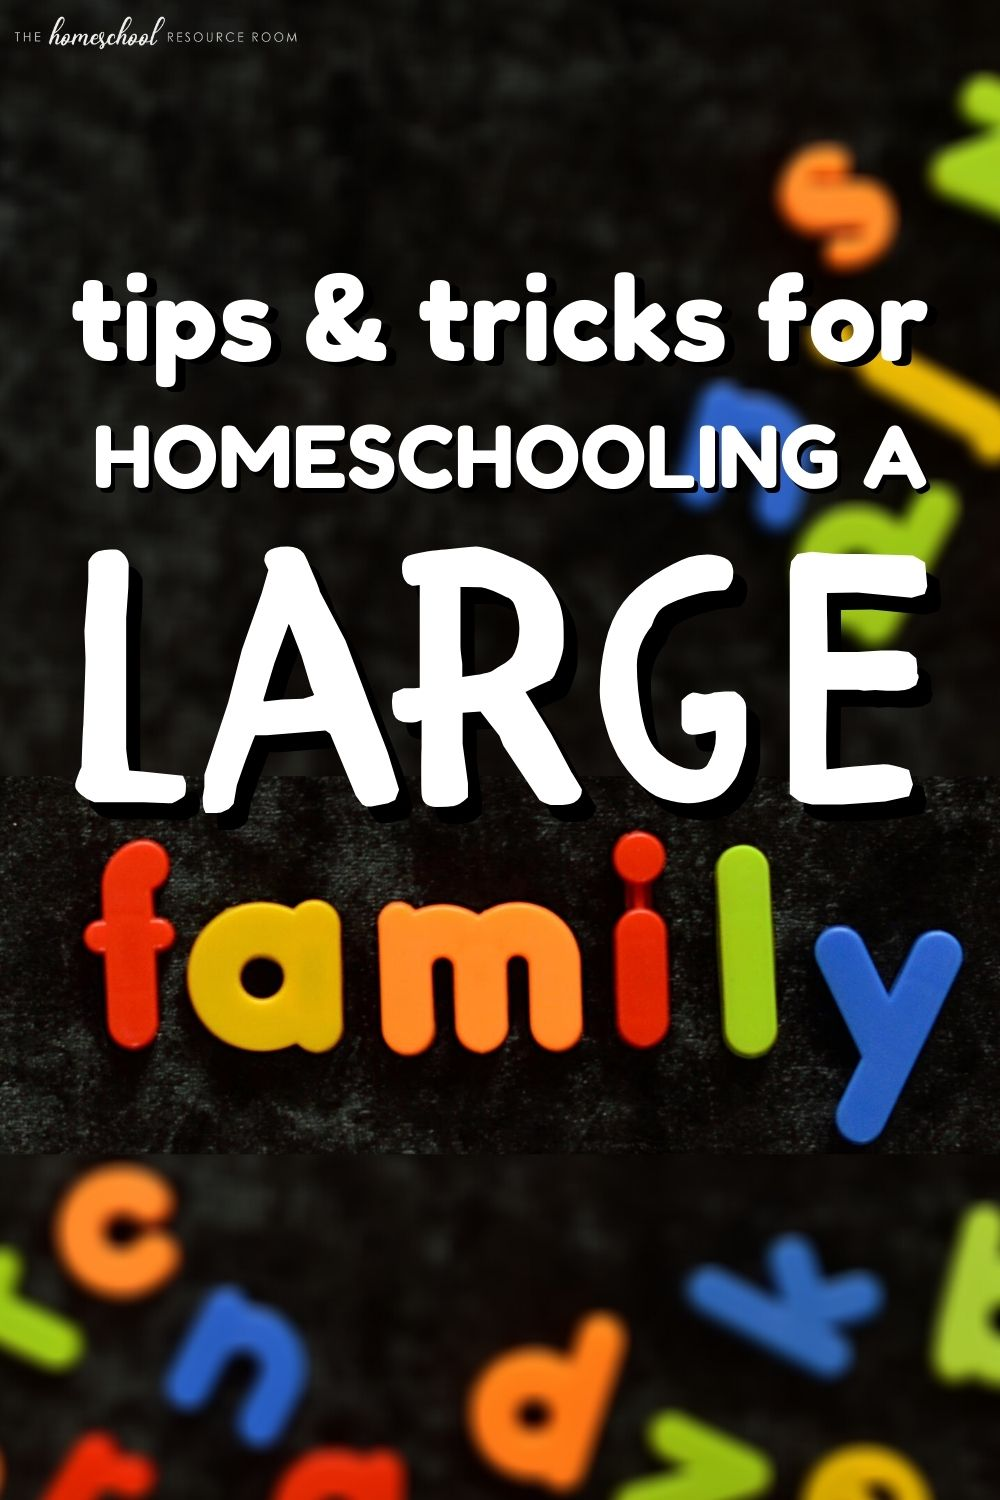 Large Family Homeschooling - tips and tricks for your big family! #homeschool #homeschooling #education